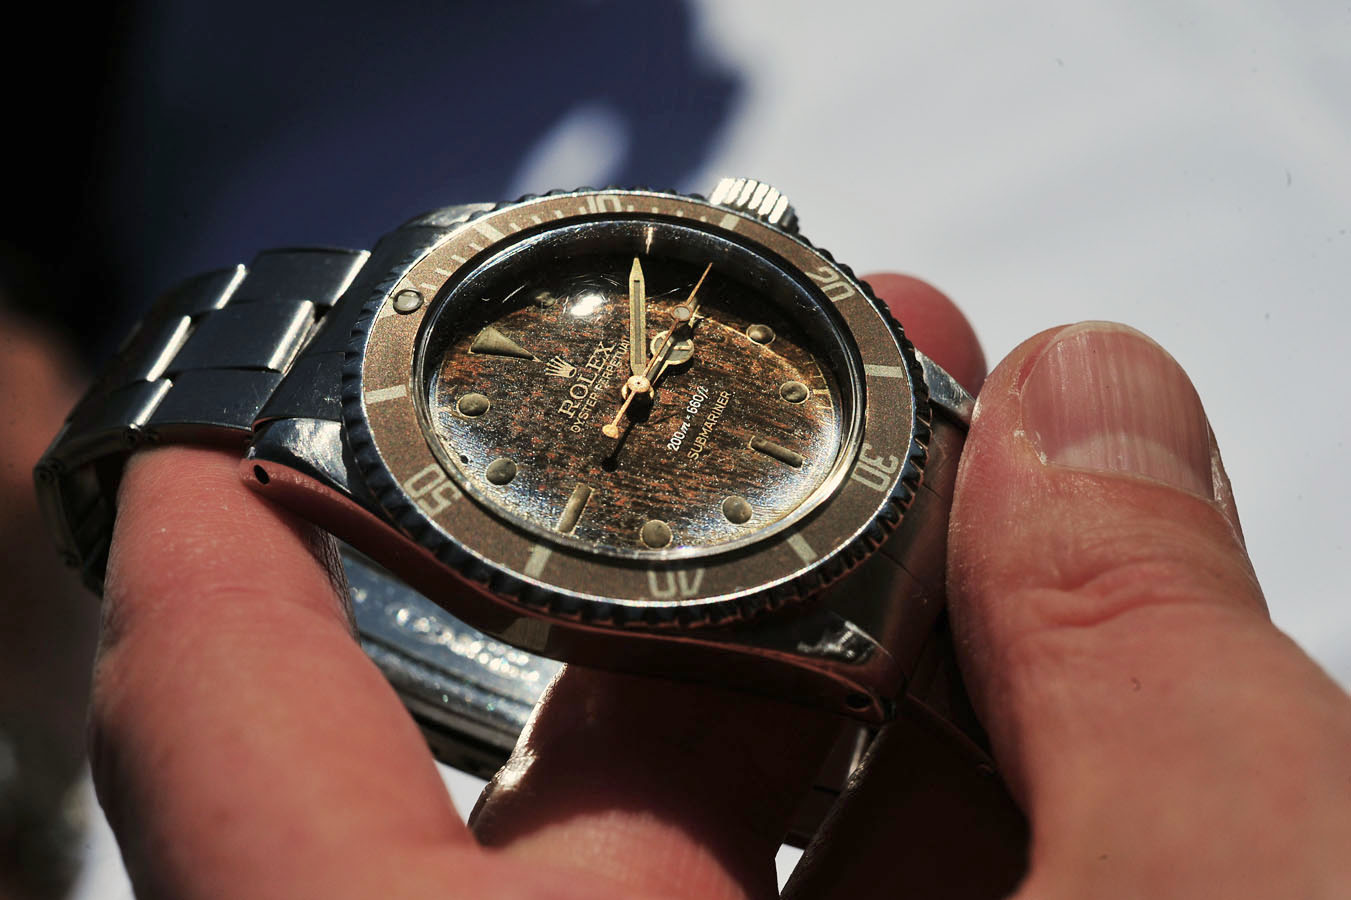 Rolex 5513 Submariner Article at Bulang and Sons - Gilt Dial Tropical